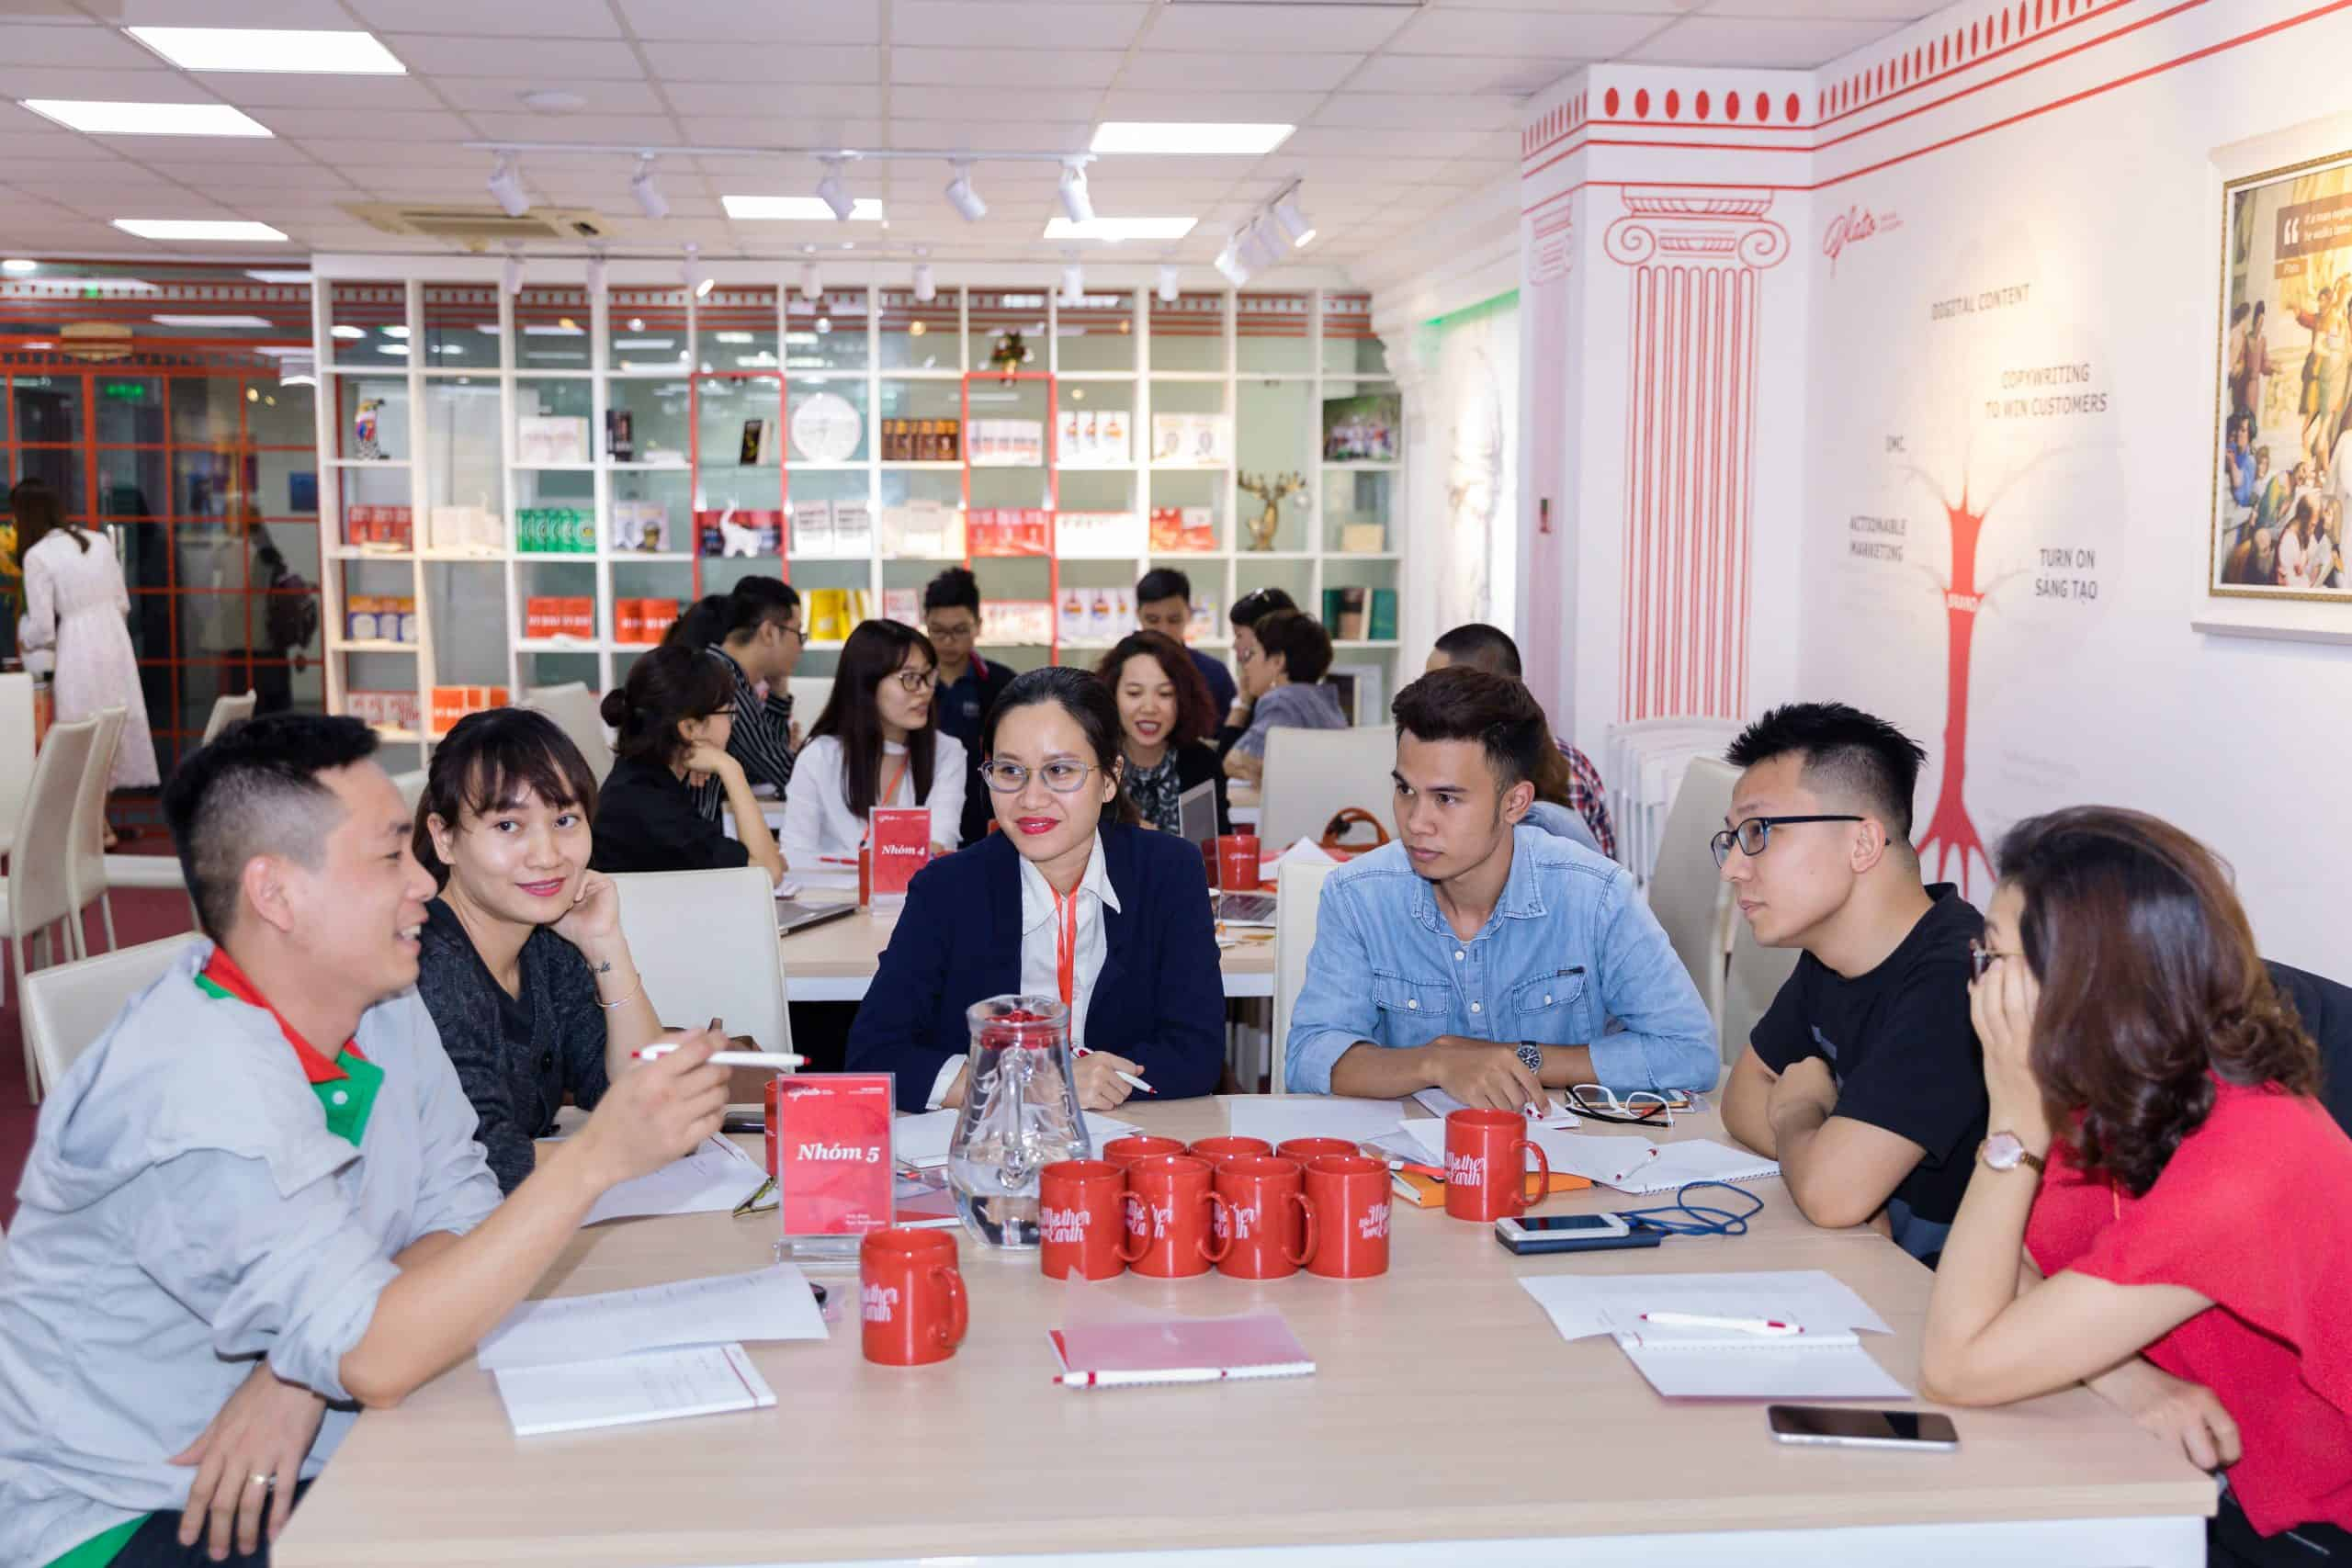 khoa-huan-luyen-chien-luoc-va-ke-hoach-content-marketing-digital